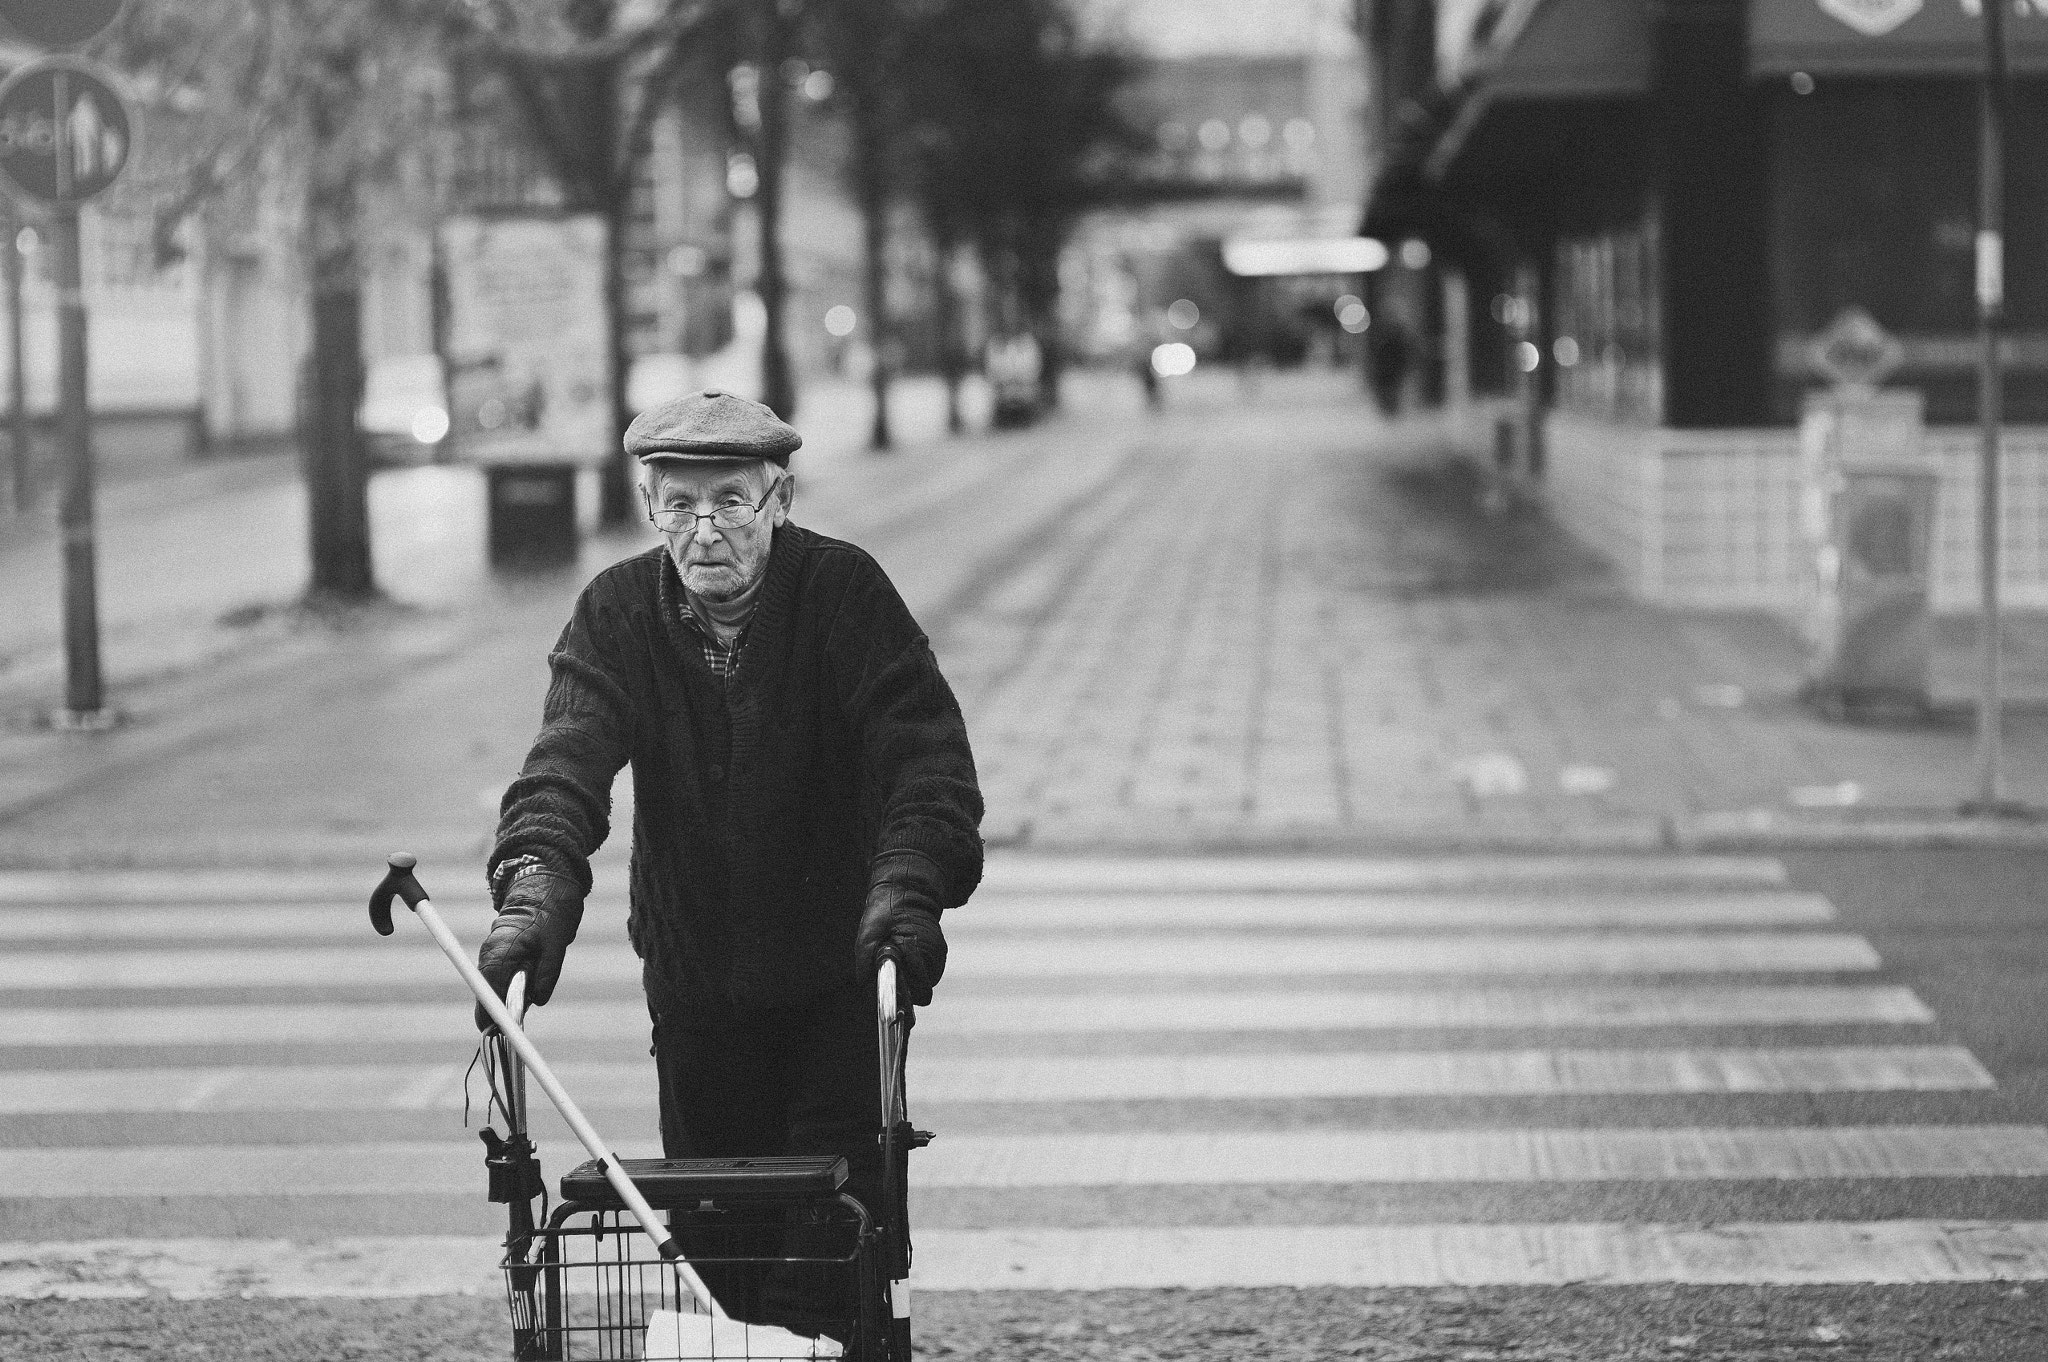 Photograph Street candid pt.5 by Juho Ajanki on 500px